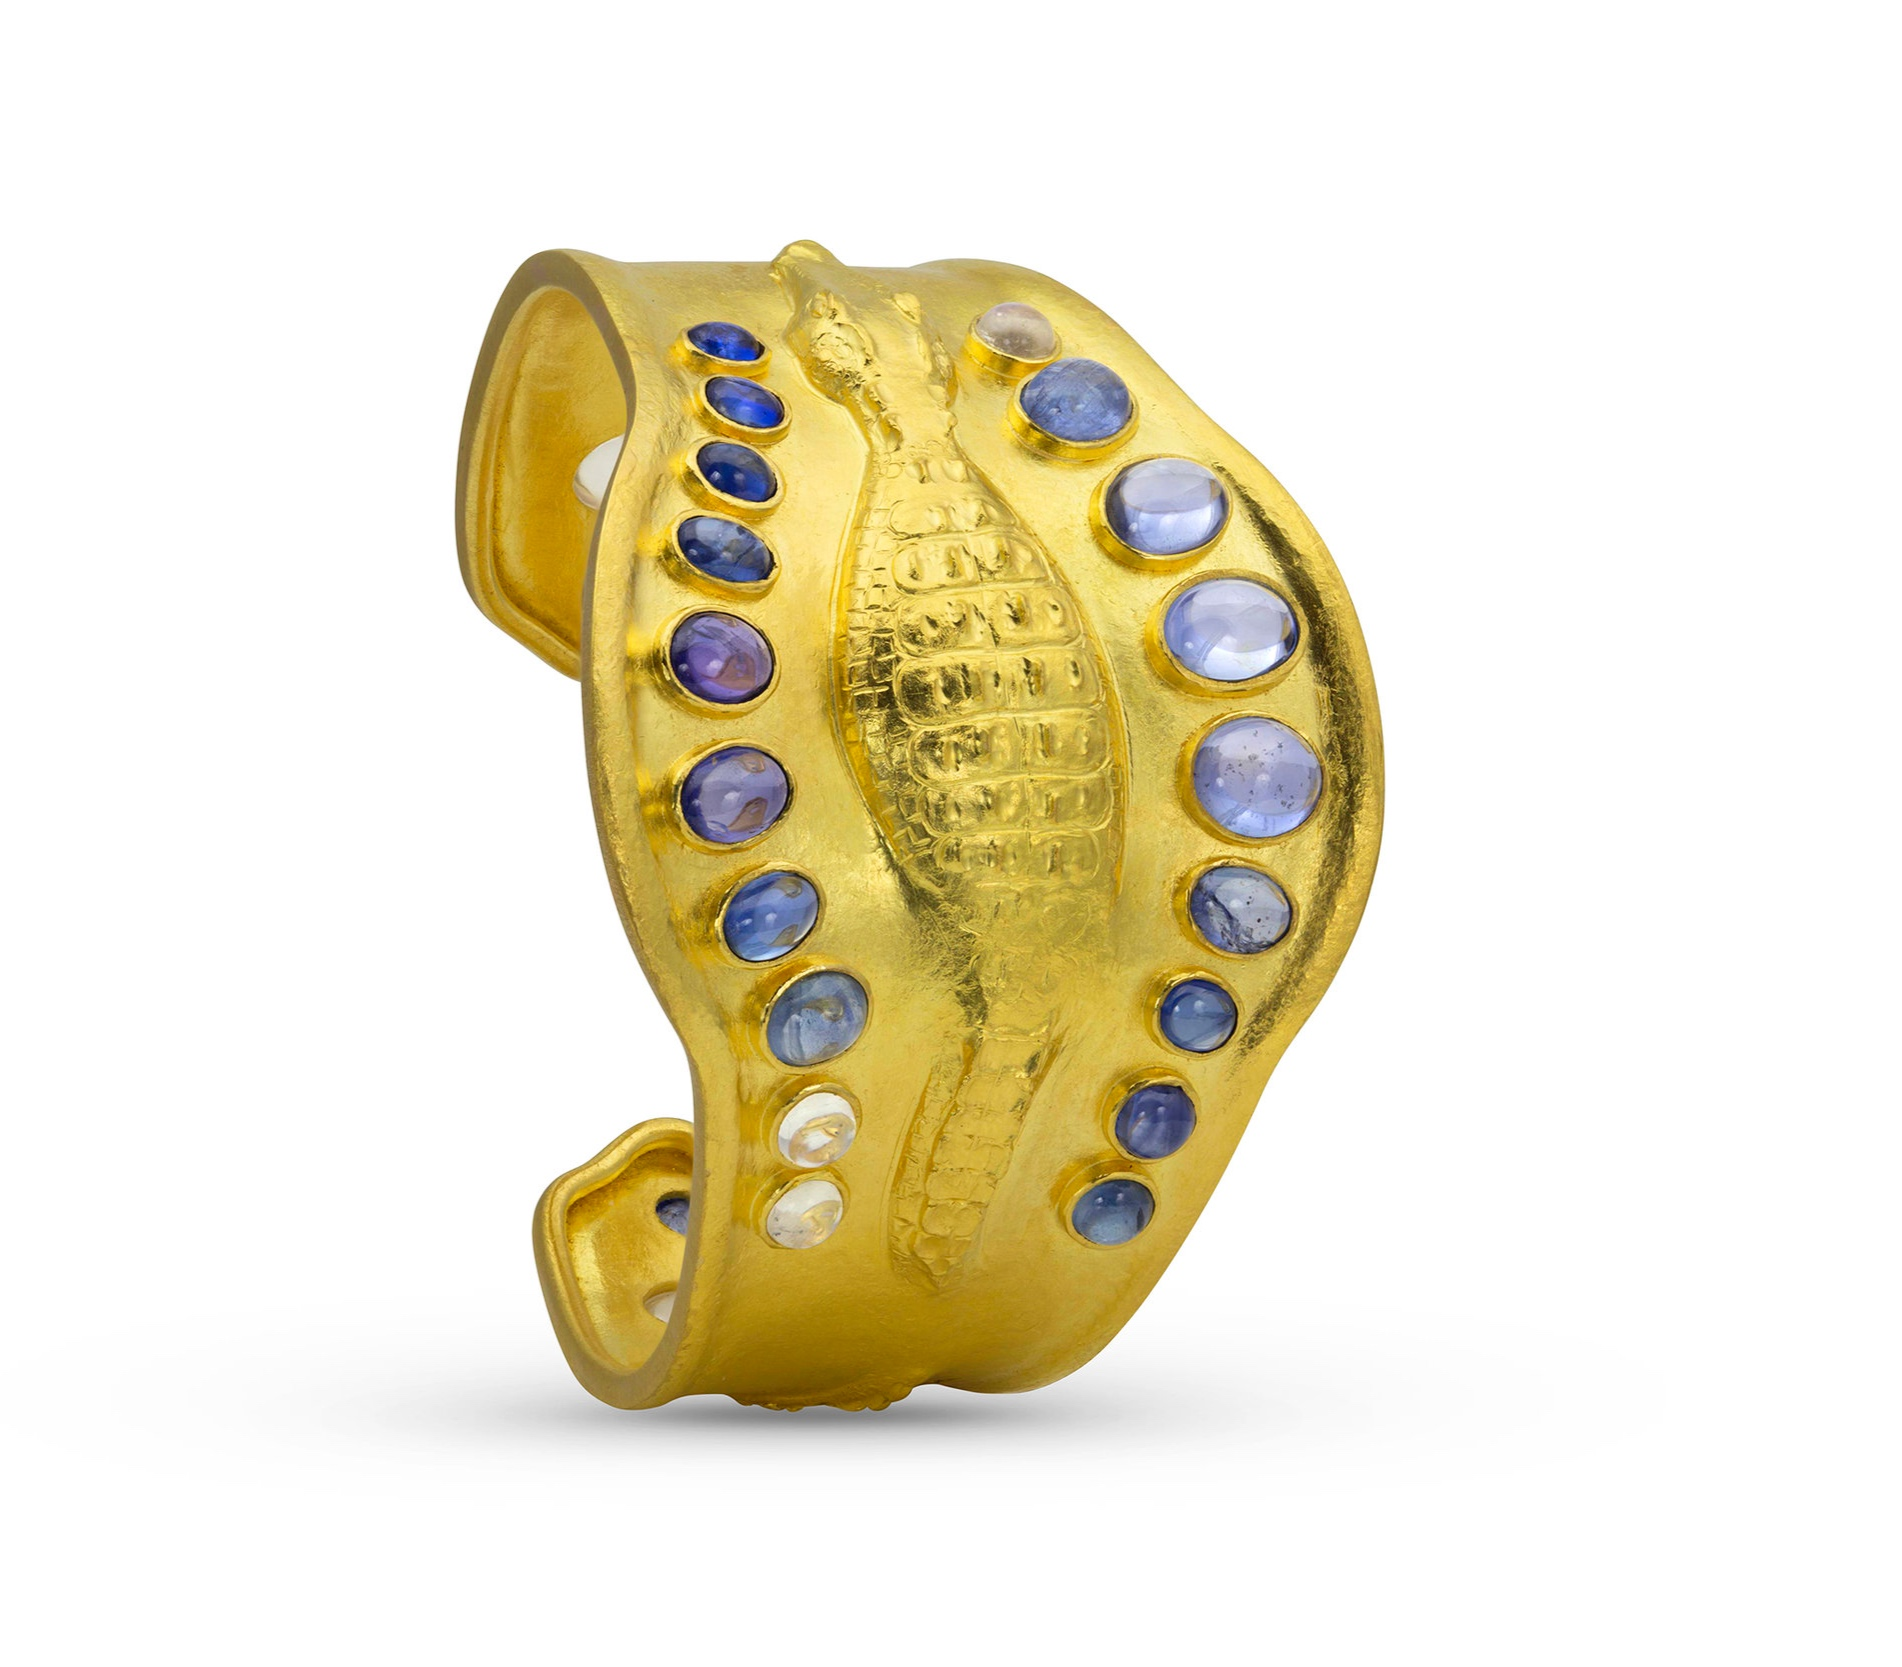 DANGEROUS CREATURE: IN THE NILE 22k yellow gold, Sapphire, Moonstone